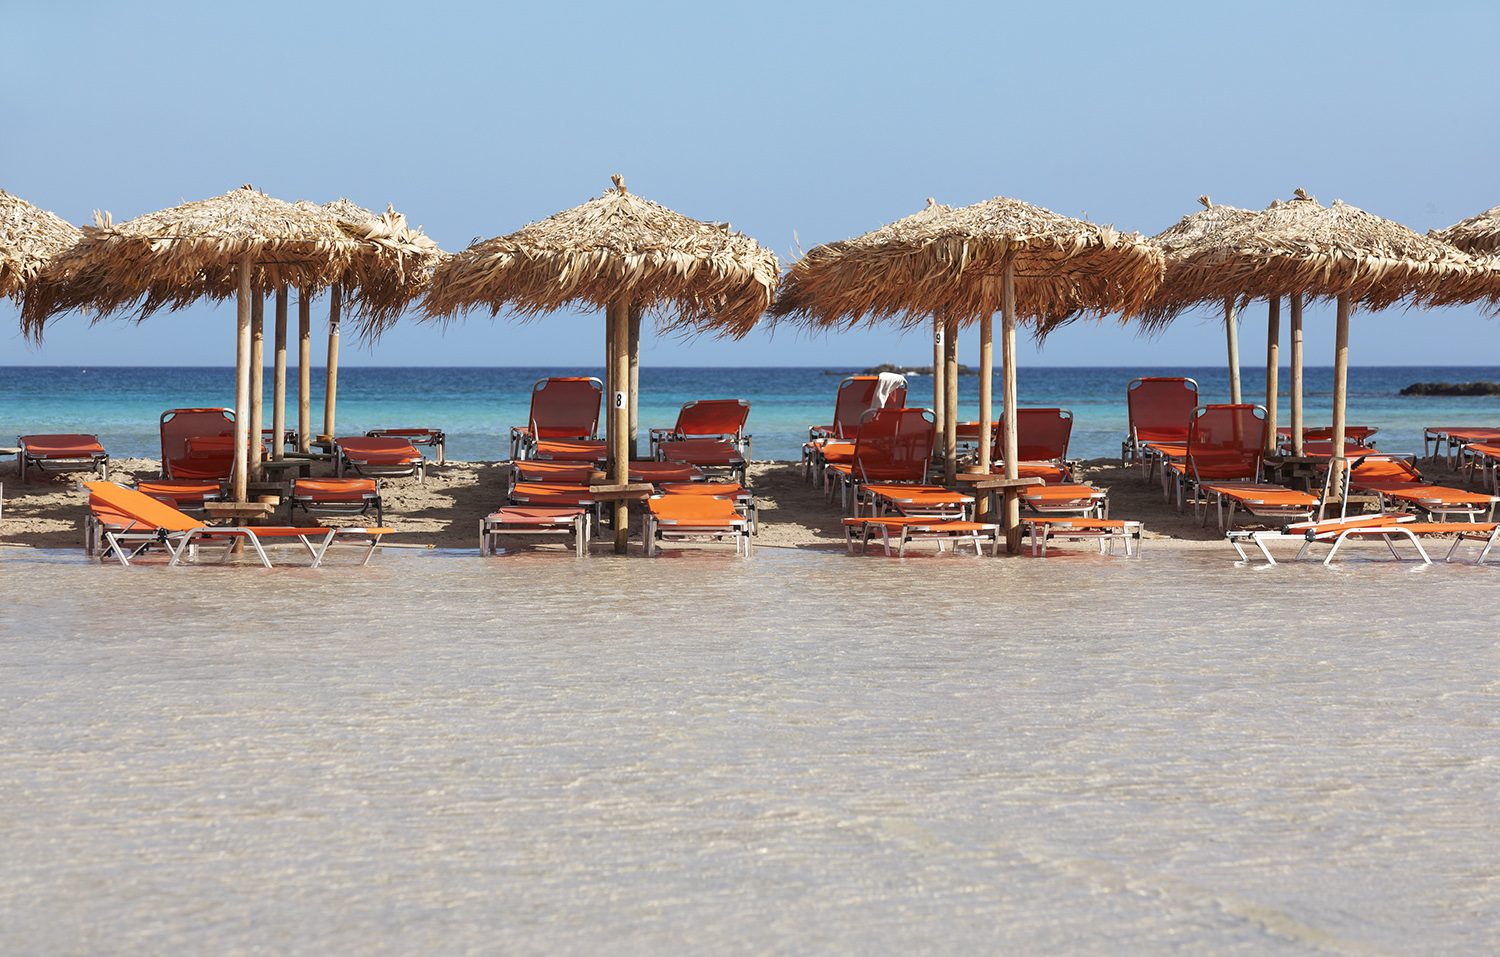 5 family friendly beaches in Crete